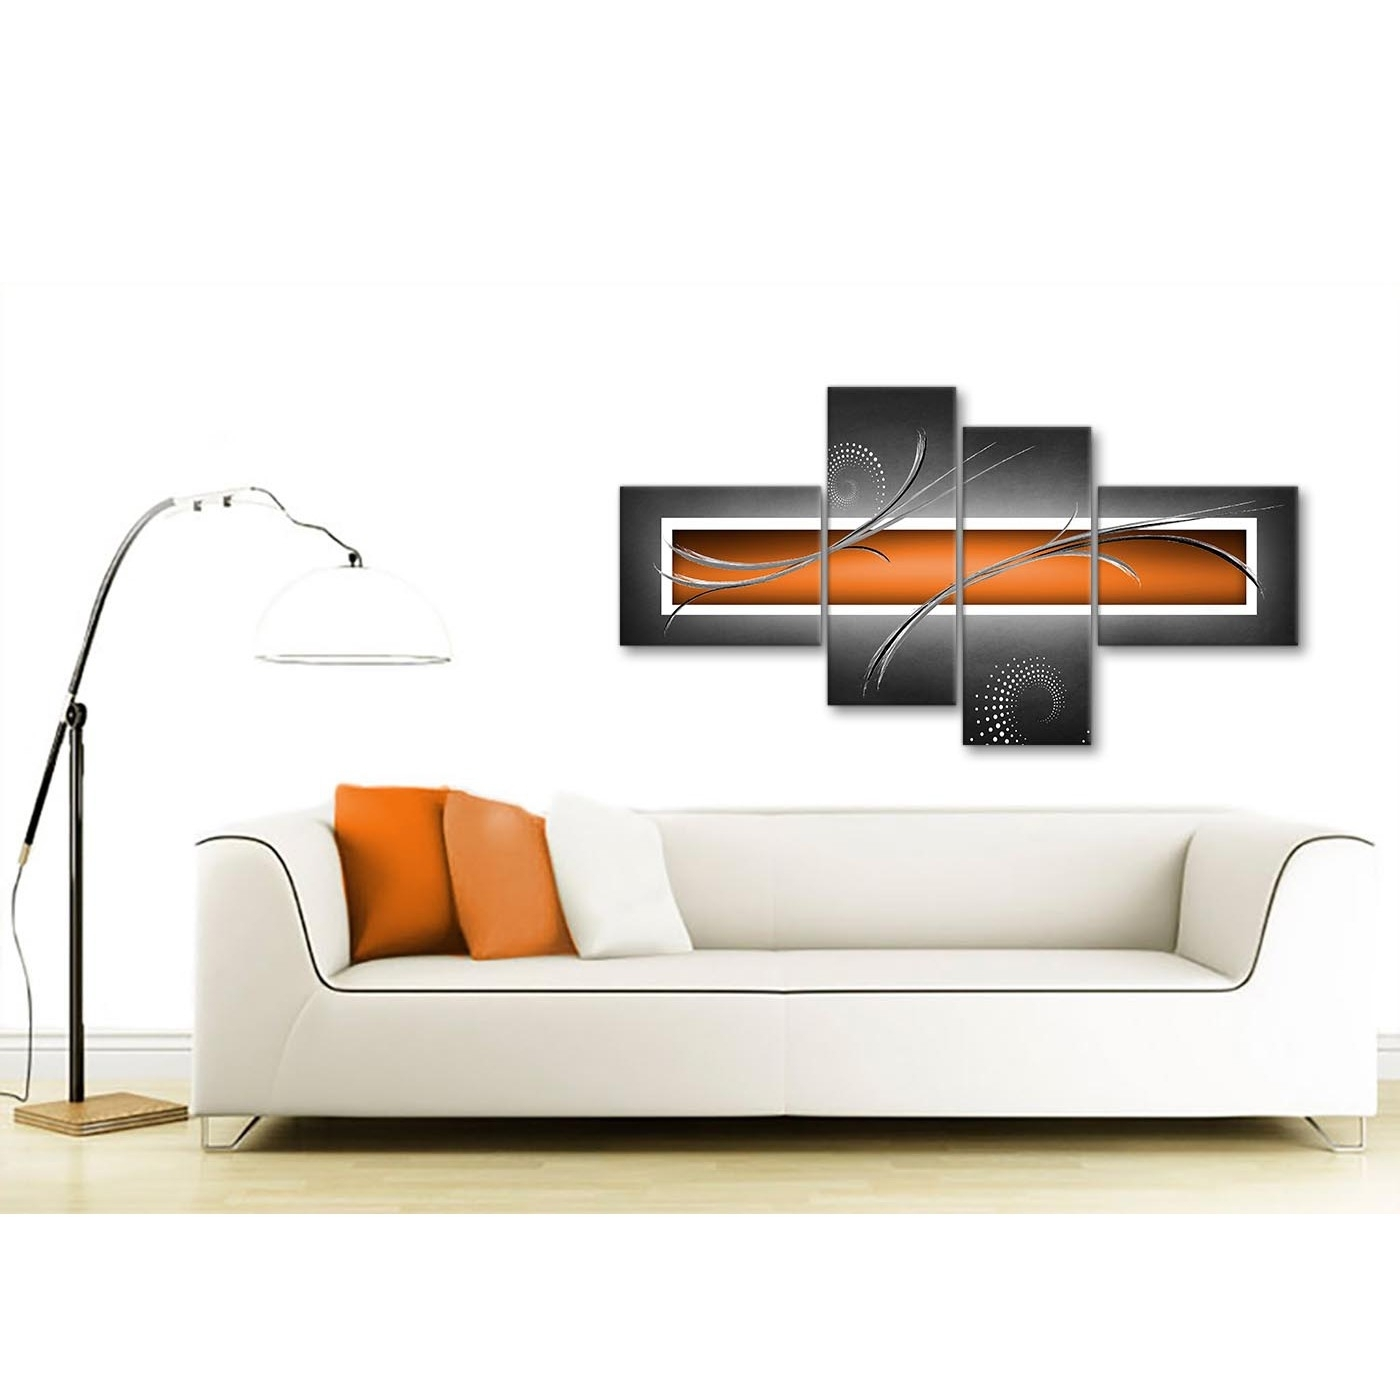 Large Orange Grey White Modern Abstract Canvas Wall Art – Split 4 With Regard To Newest Modern Large Canvas Wall Art (Gallery 17 of 20)